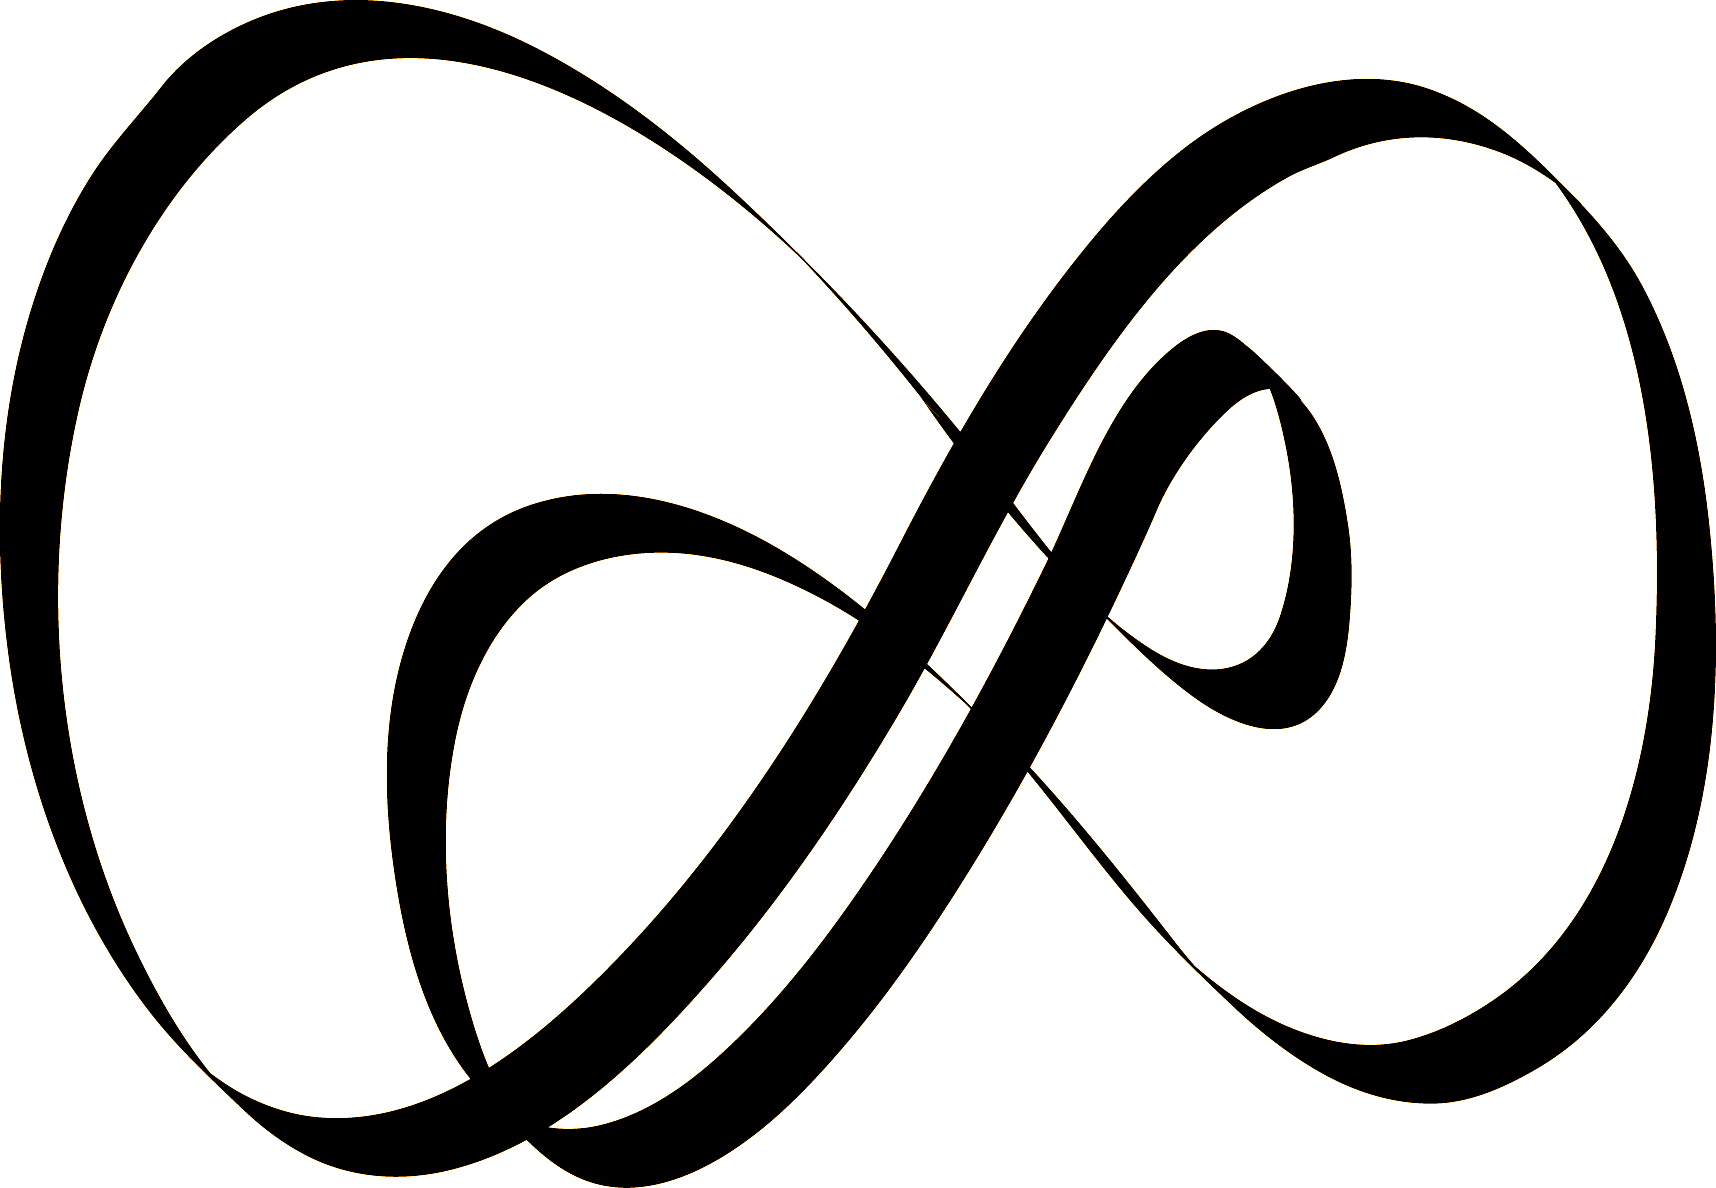 Infinity clipart infinity sign. Double